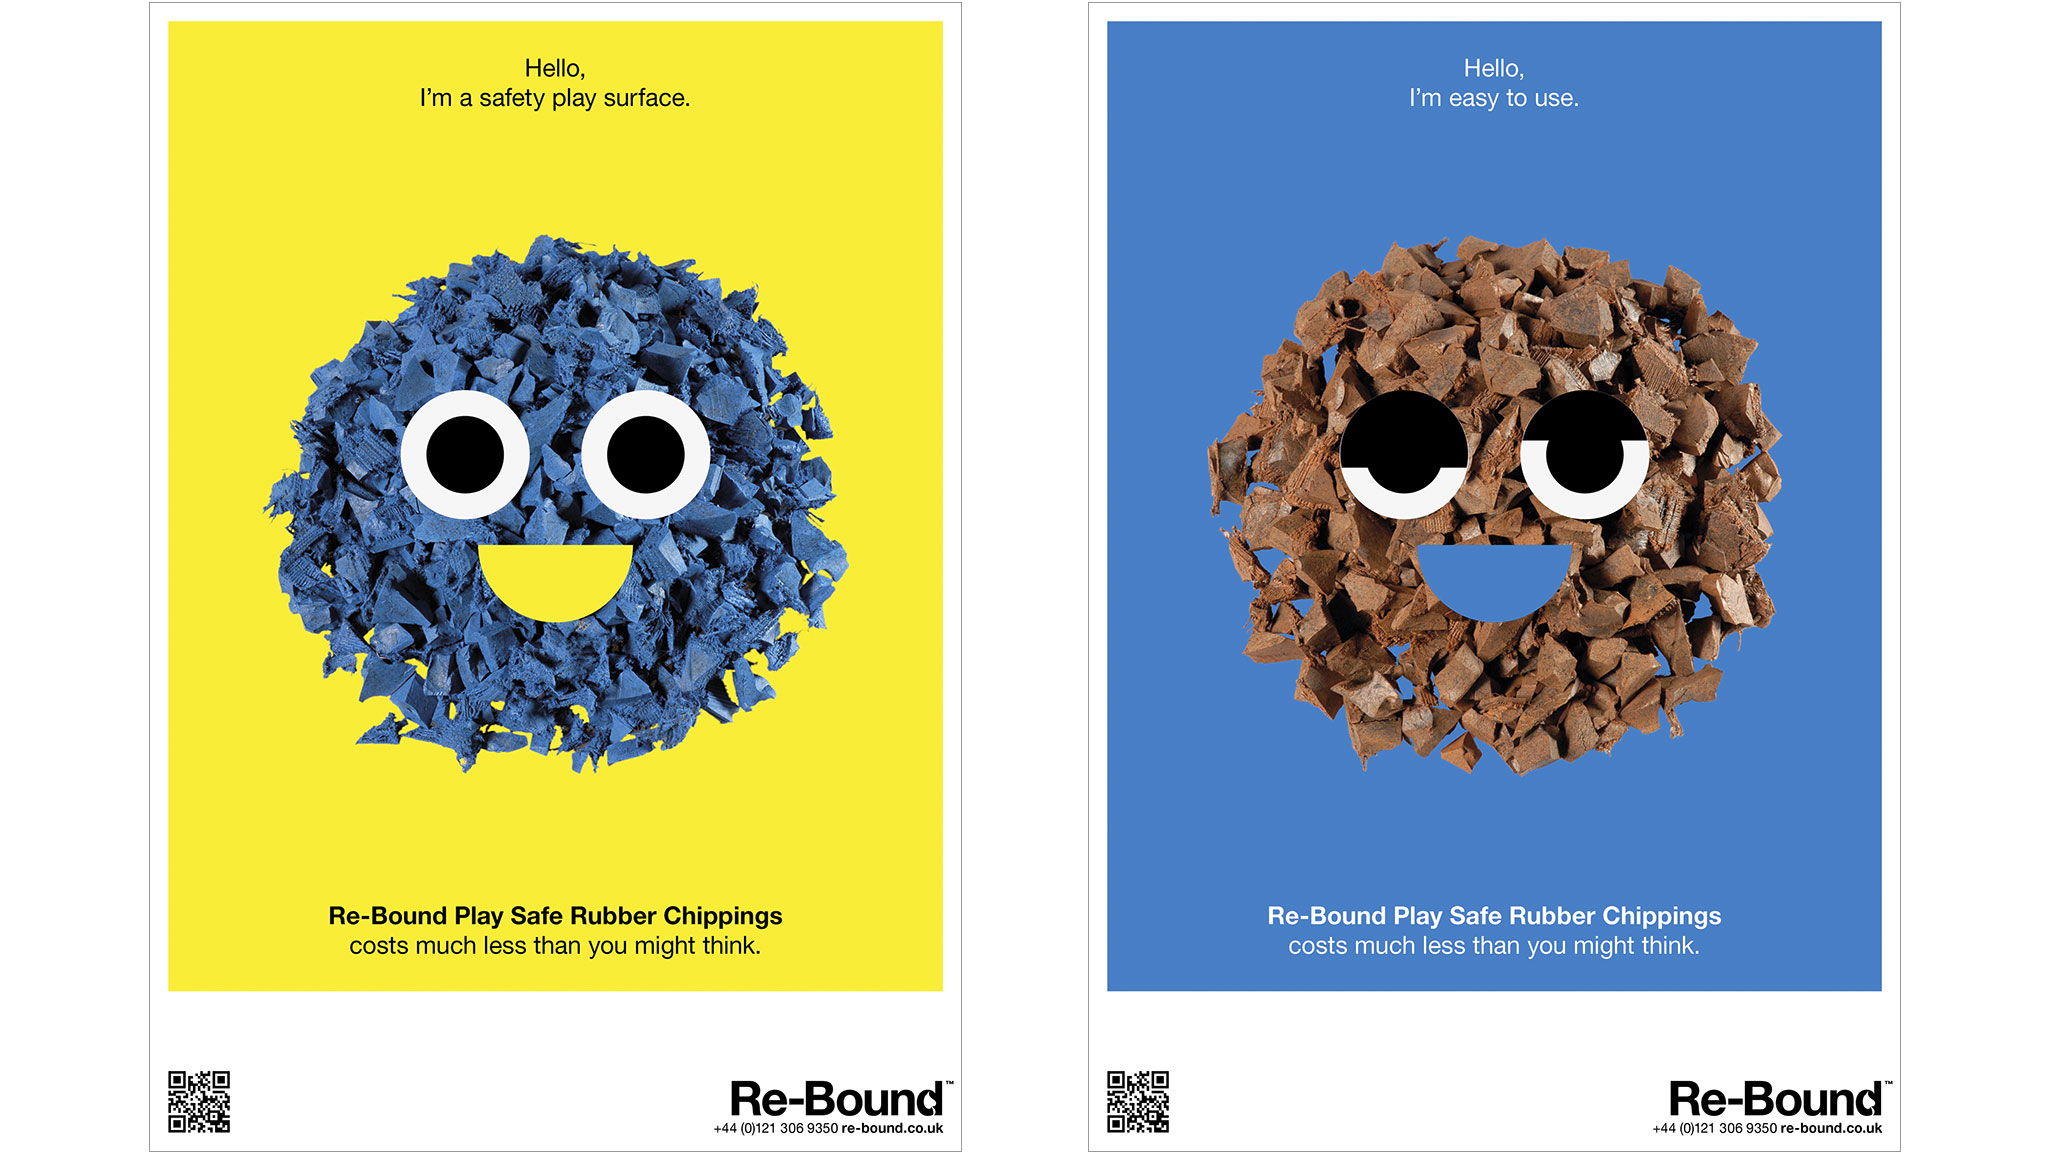 Re-Bound_advertising_01@2x